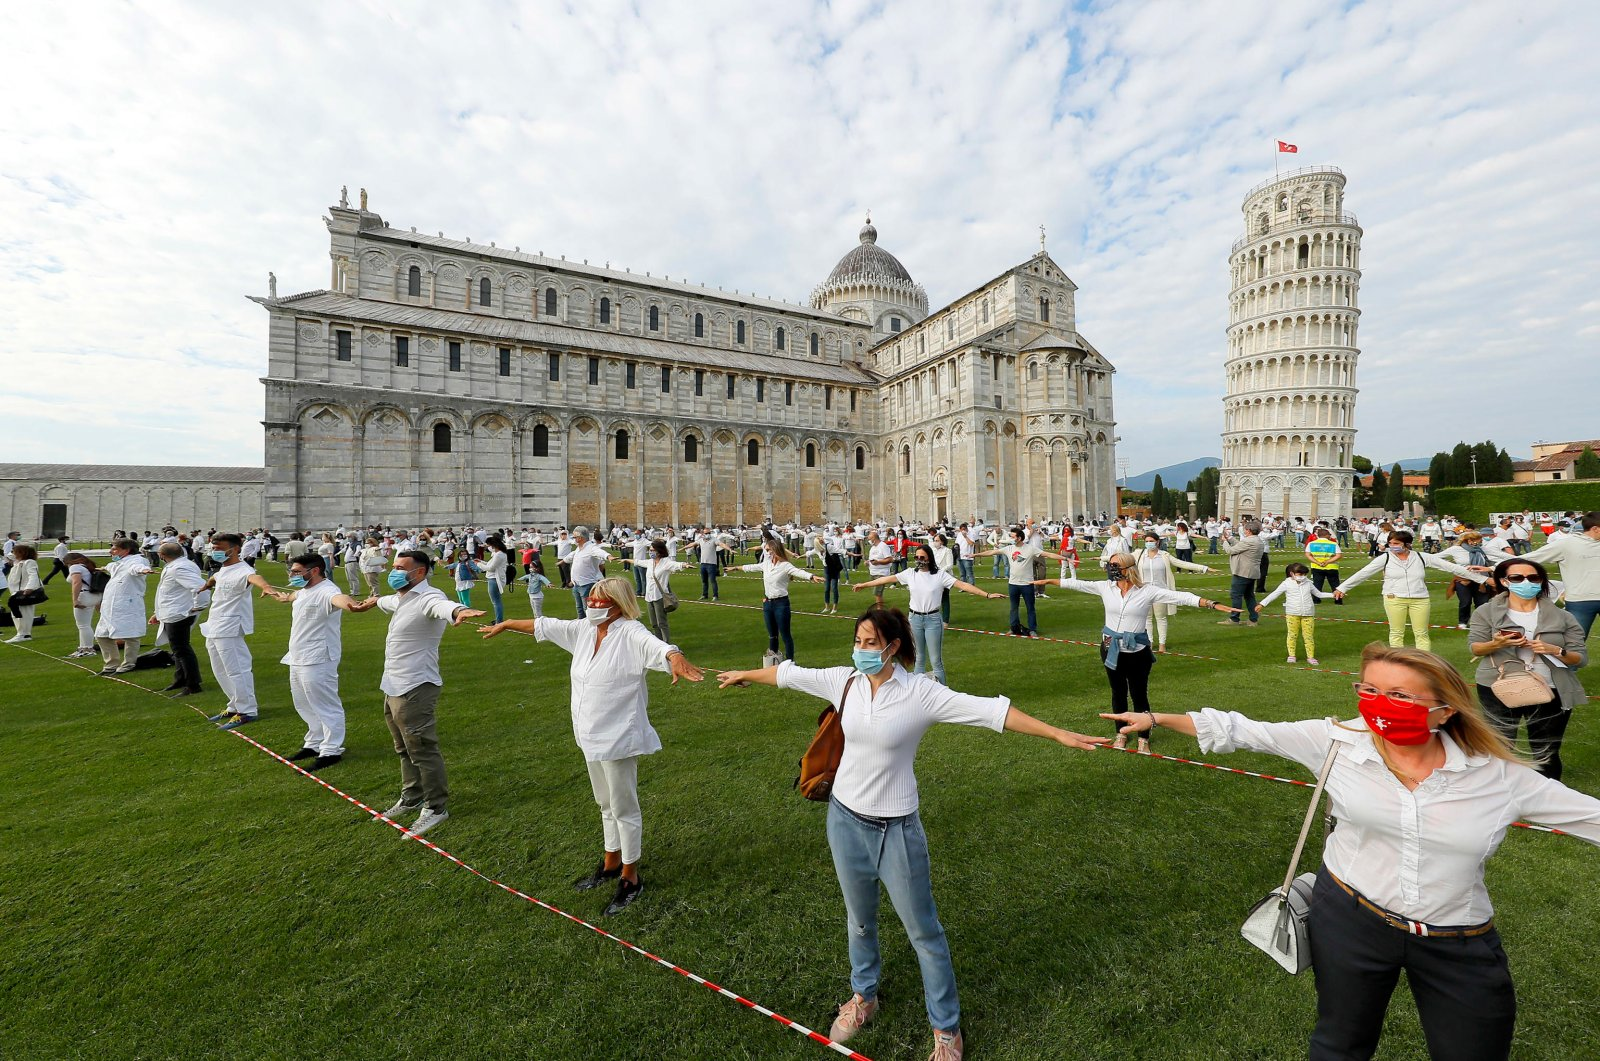 People gather for a flash mob on the Square of Miracles to celebrate the reopening of the Leaning Tower after it closed to contain the spread of COVID-19, In Pisa, Italy, May 30, 2020. (EPA Photo)